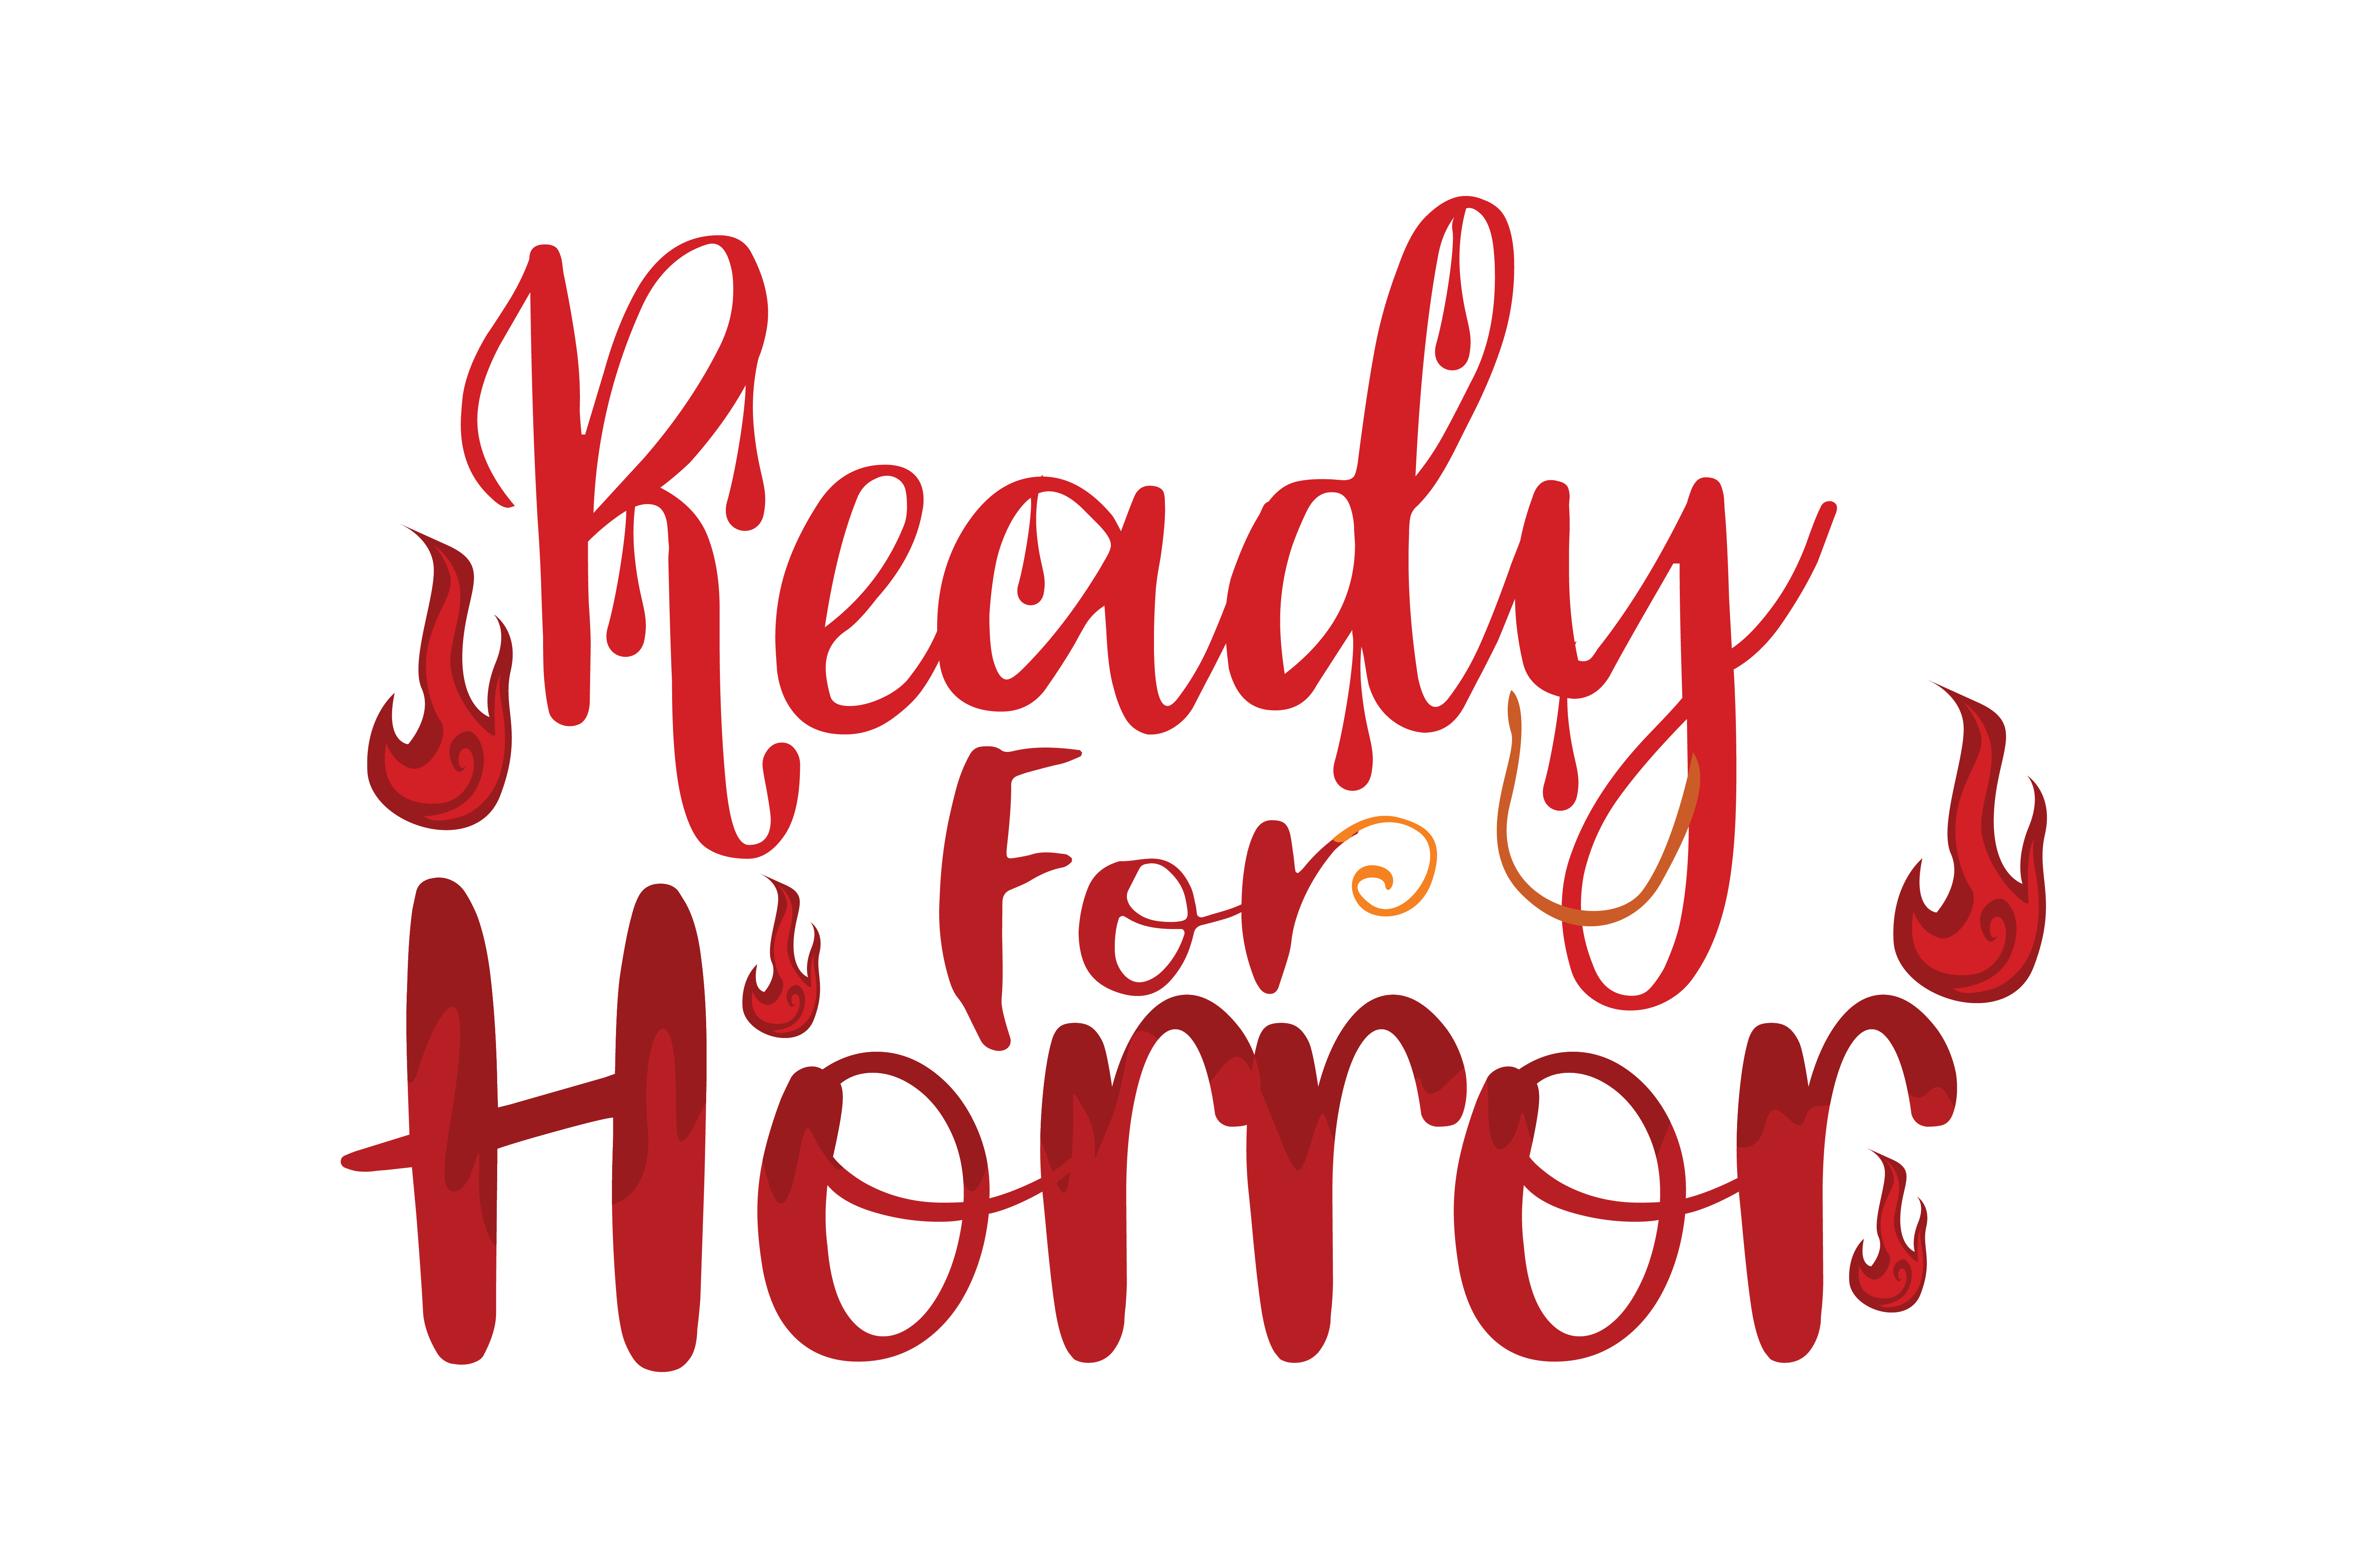 Download Free Ready For Horror Graphic By Thelucky Creative Fabrica for Cricut Explore, Silhouette and other cutting machines.